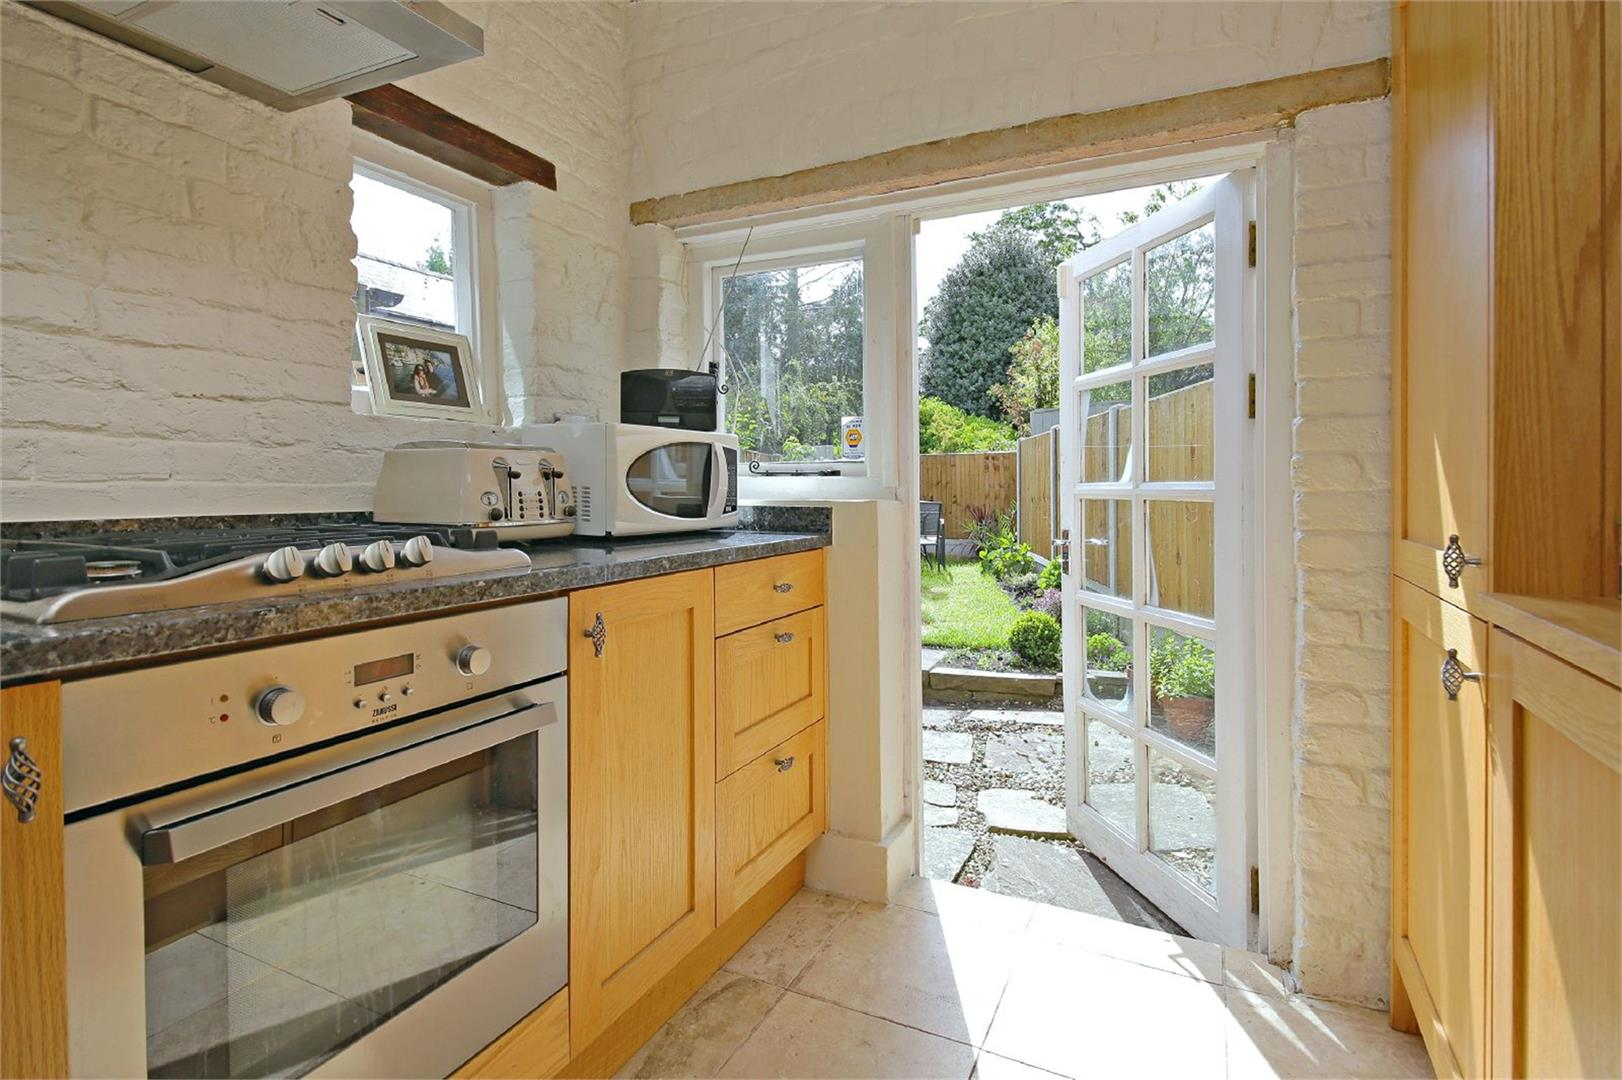 2 bed to rent in Letchmore Heath - (Property Image 3)